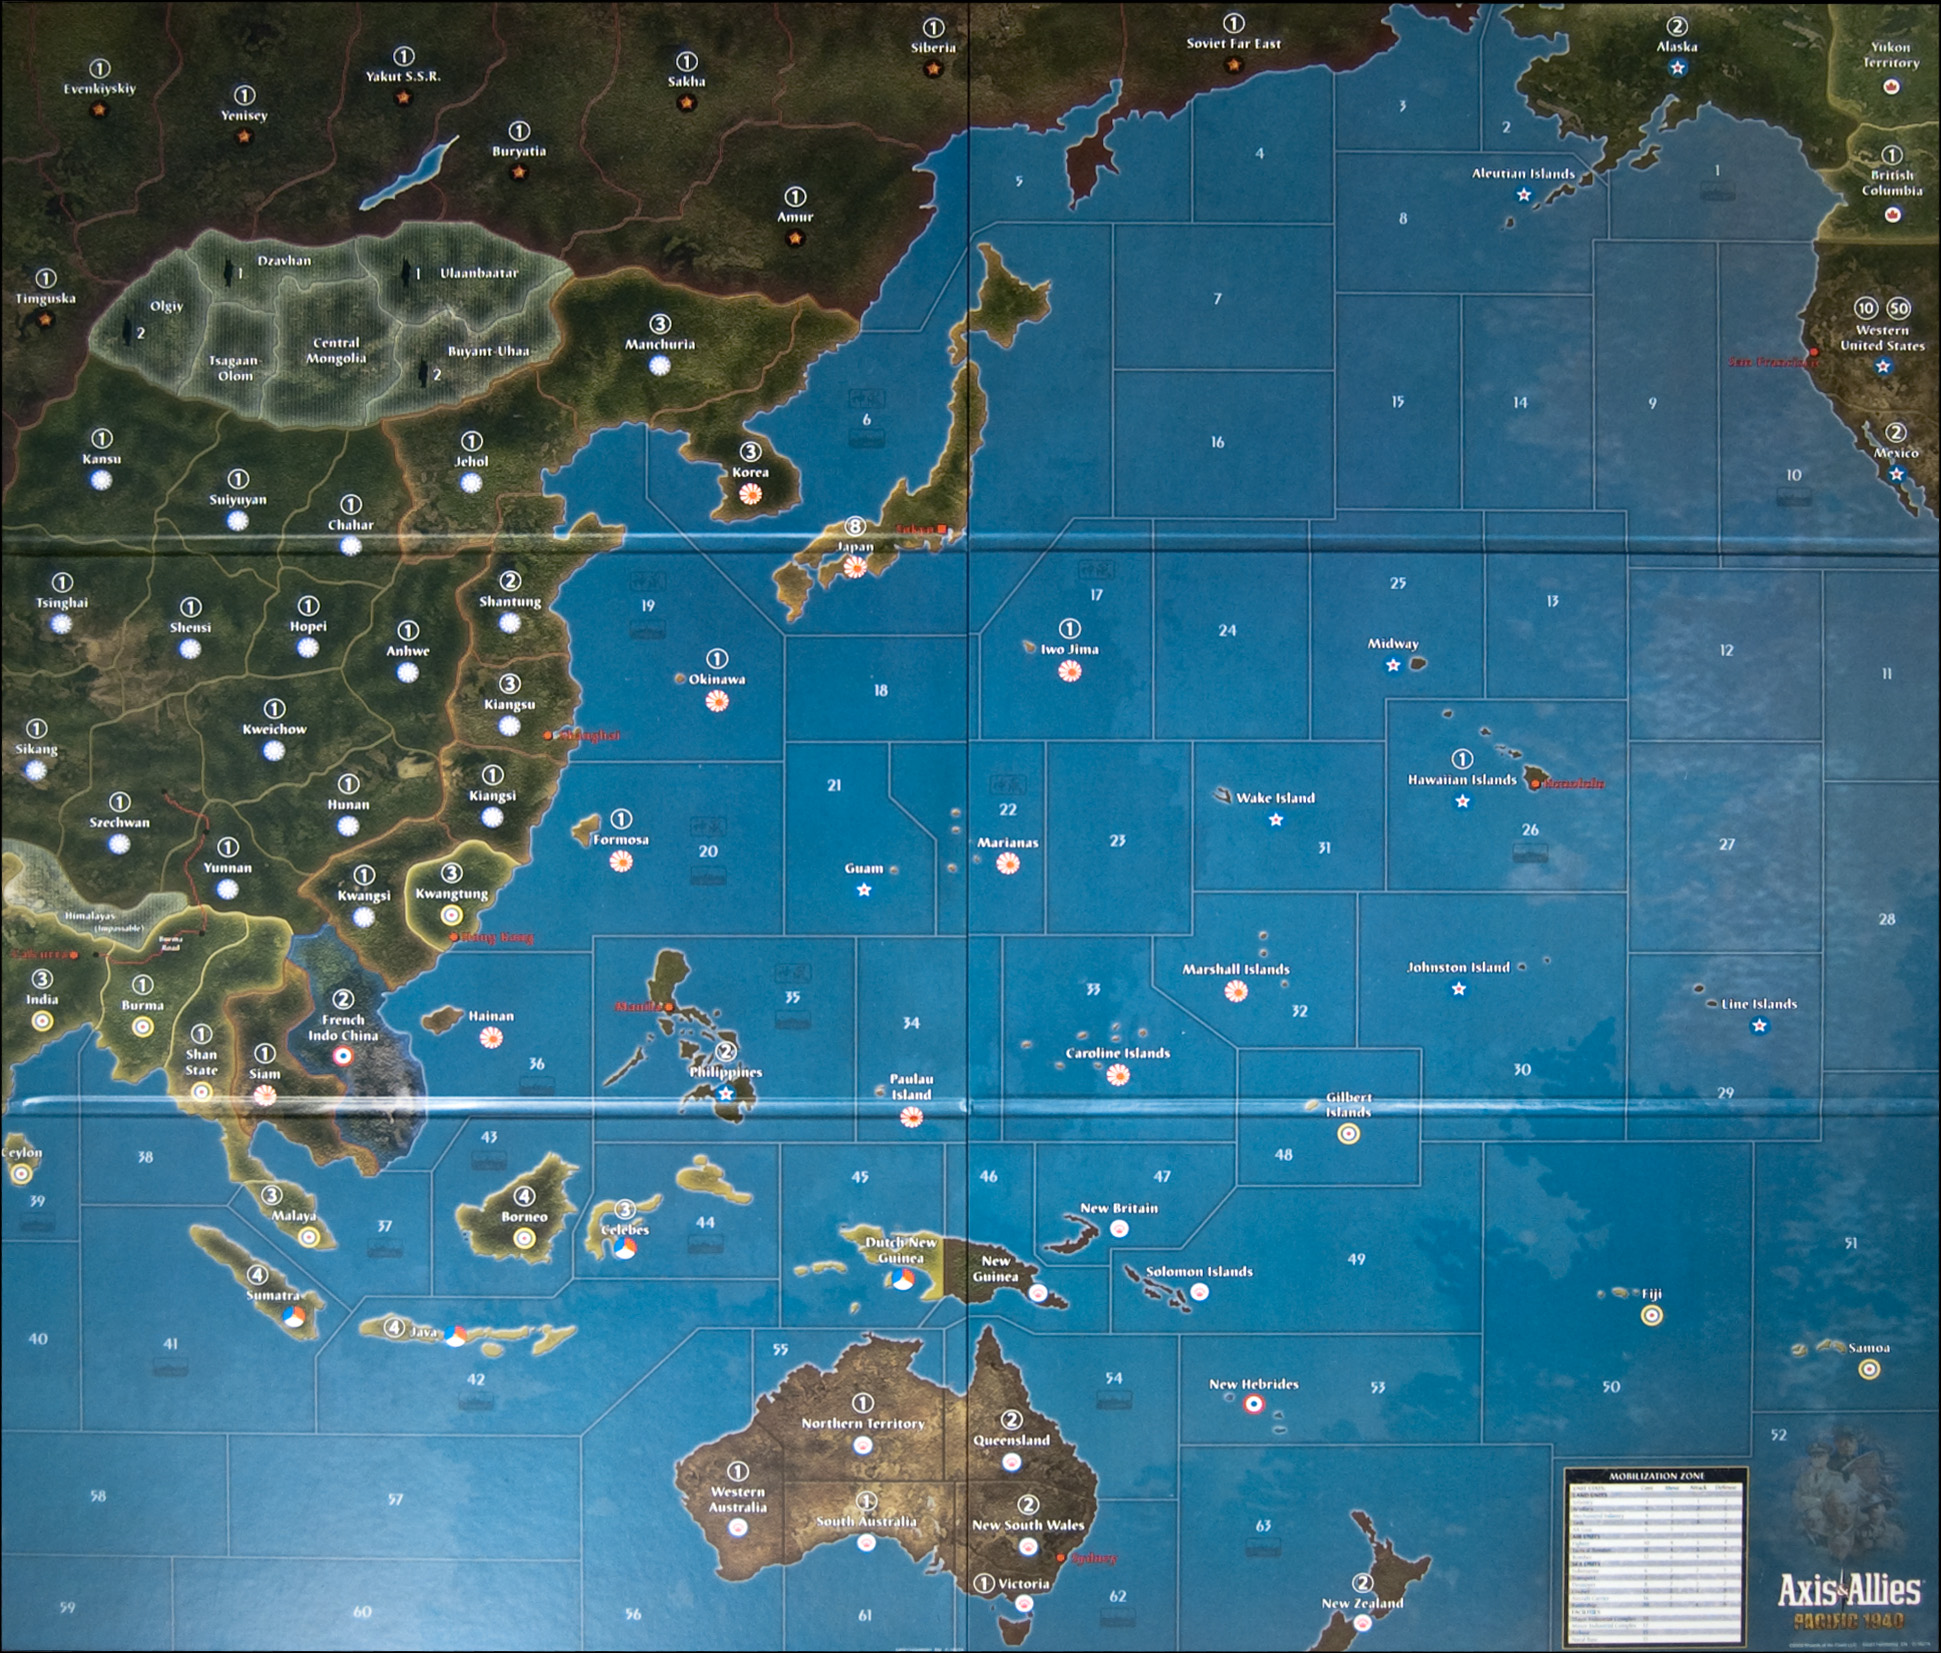 Axis And Allies Pacific Map Image: Axis & Allies Pacific 1940 Map | Axis & Allies .org